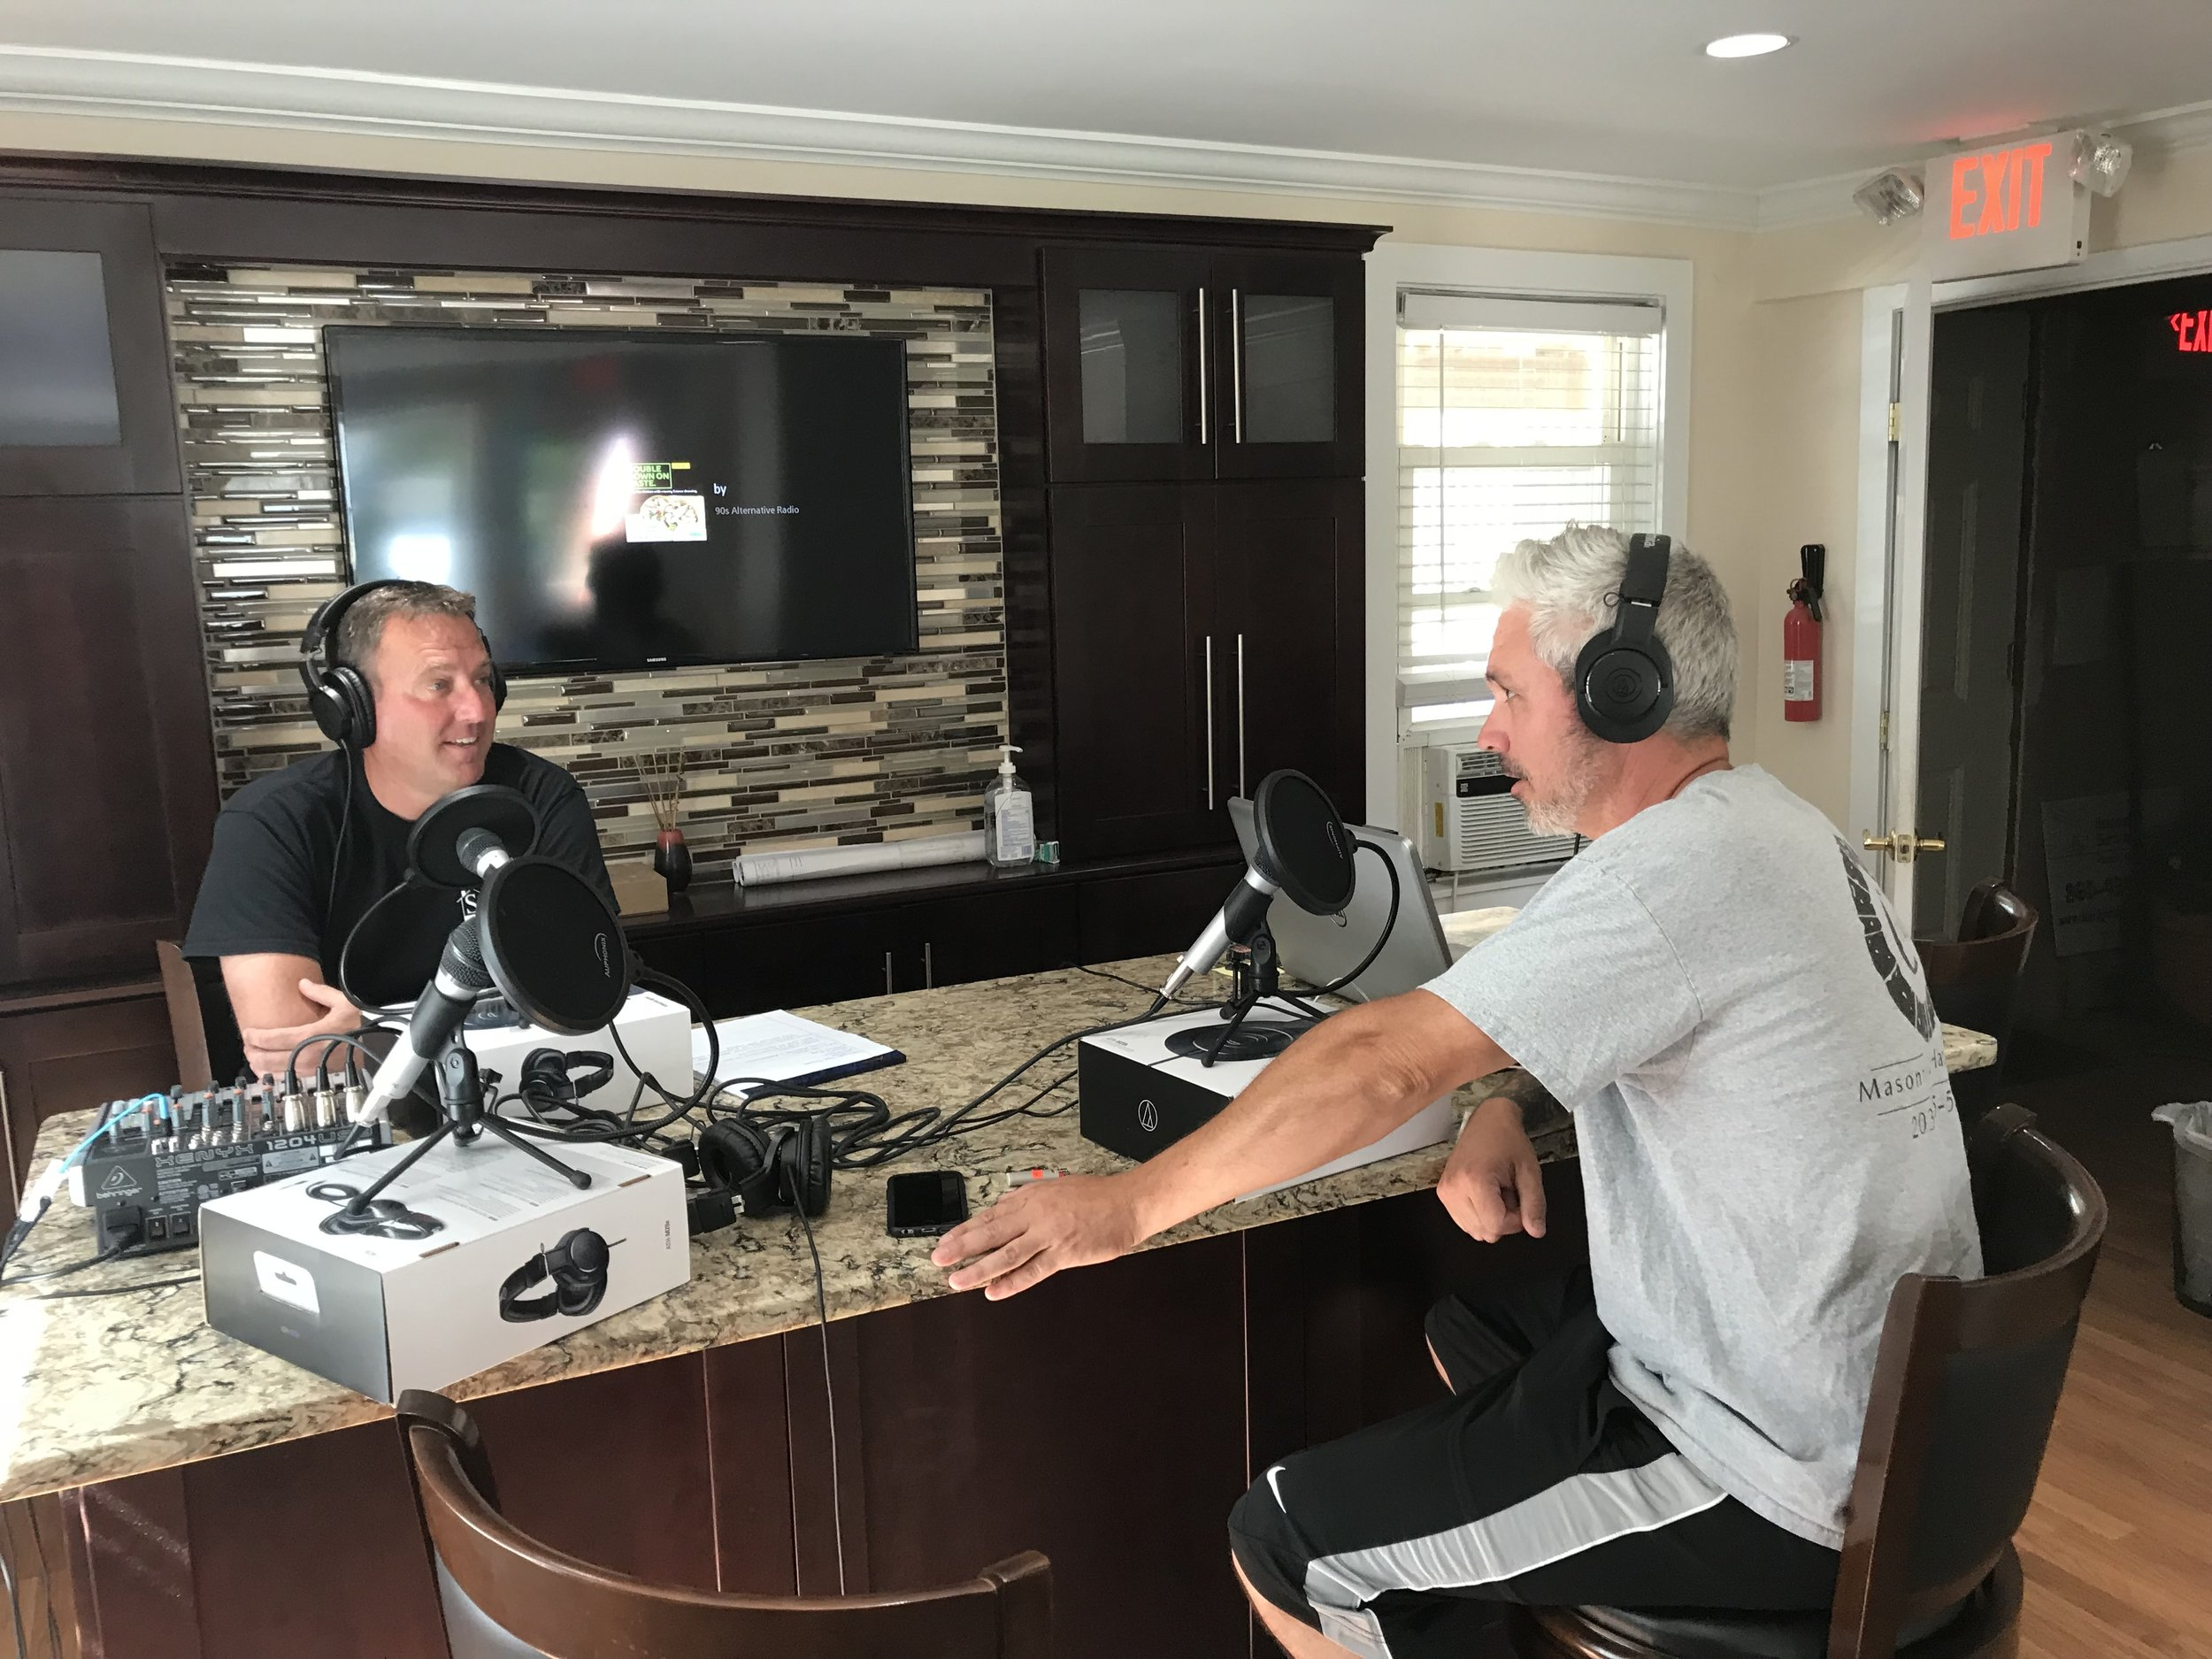 Behind the studs podcast - episode 5 - kevin mcmahon talks masonry (3).jpg